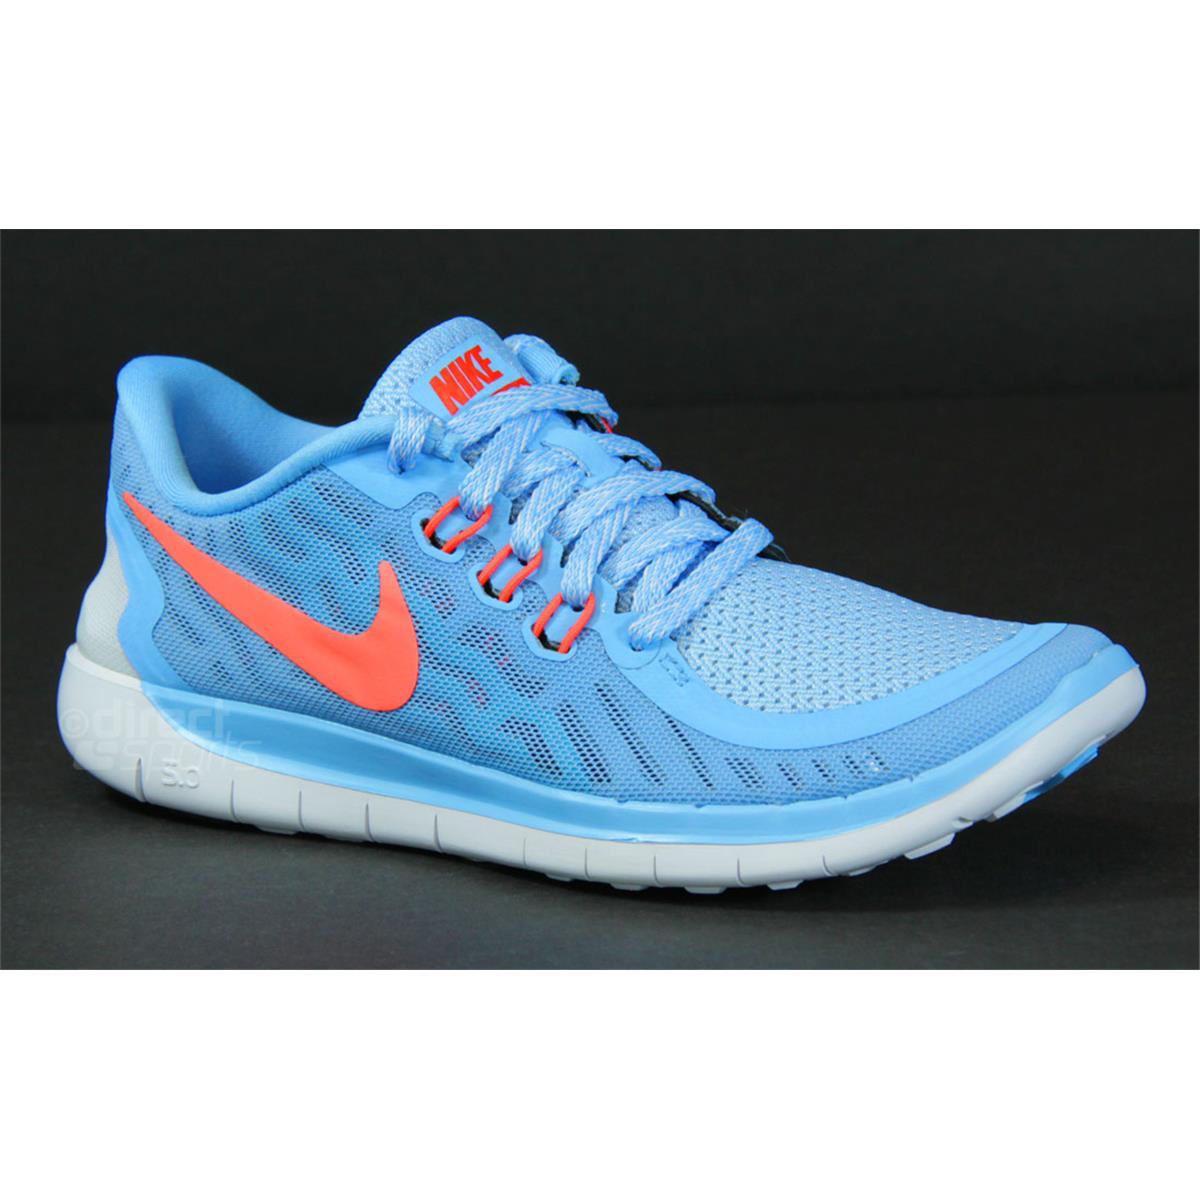 eb3139e7ea177 Nike Free 5.0 GS Junior Running Shoes (Blue)